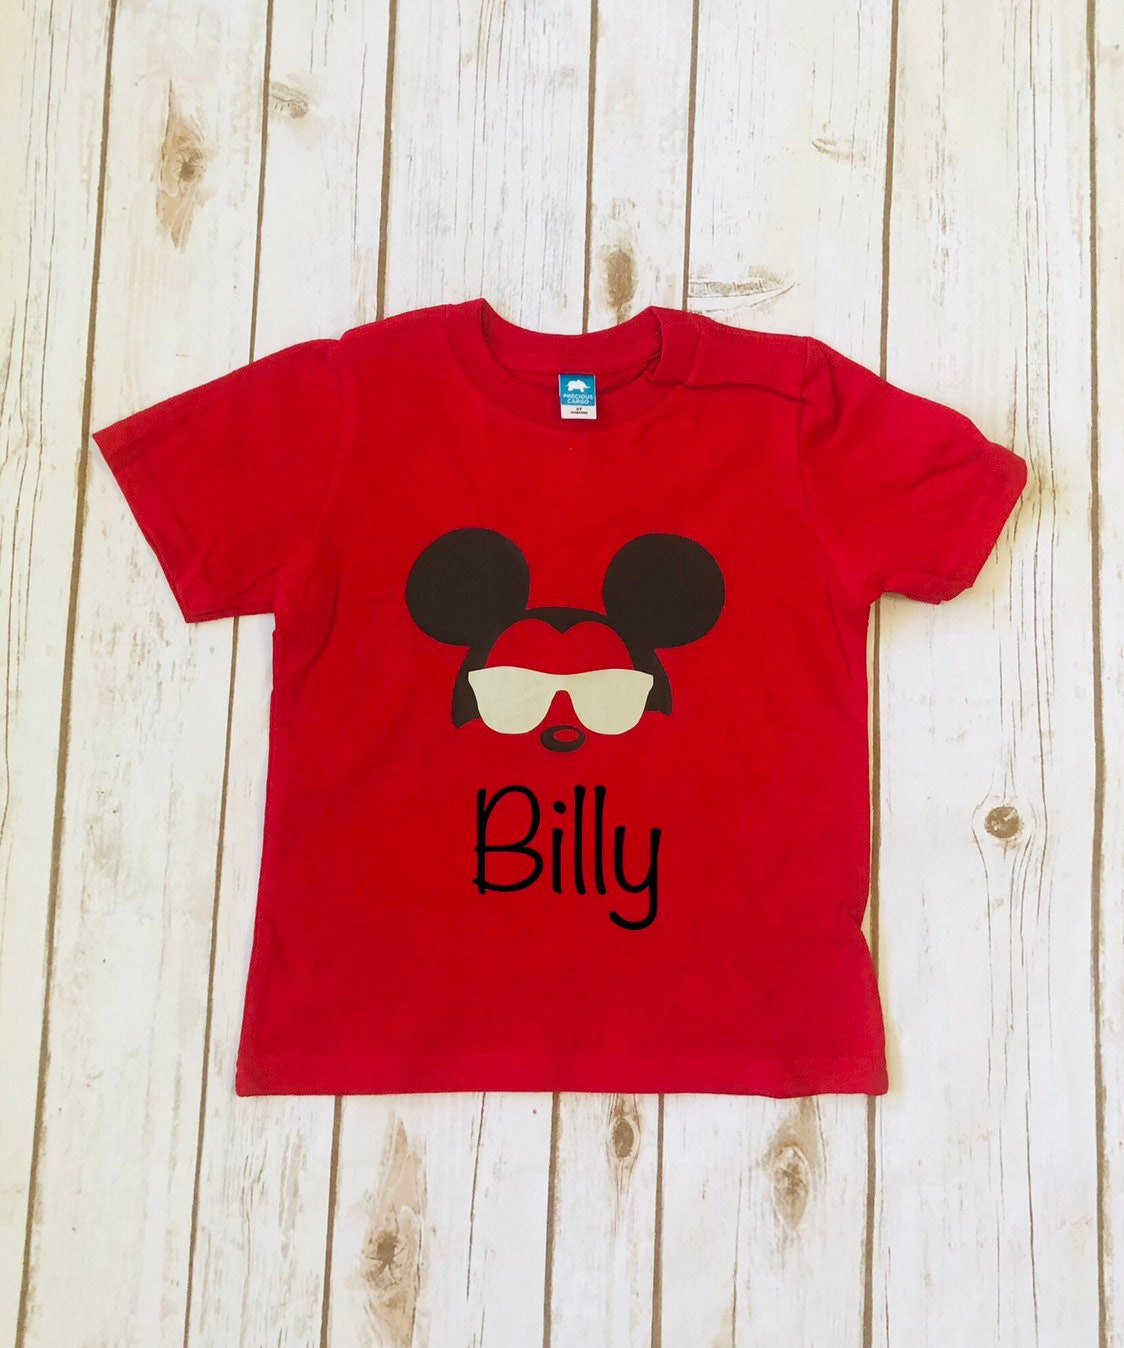 d414bd146 Personalized Embroidered Disney Shirts - DREAMWORKS